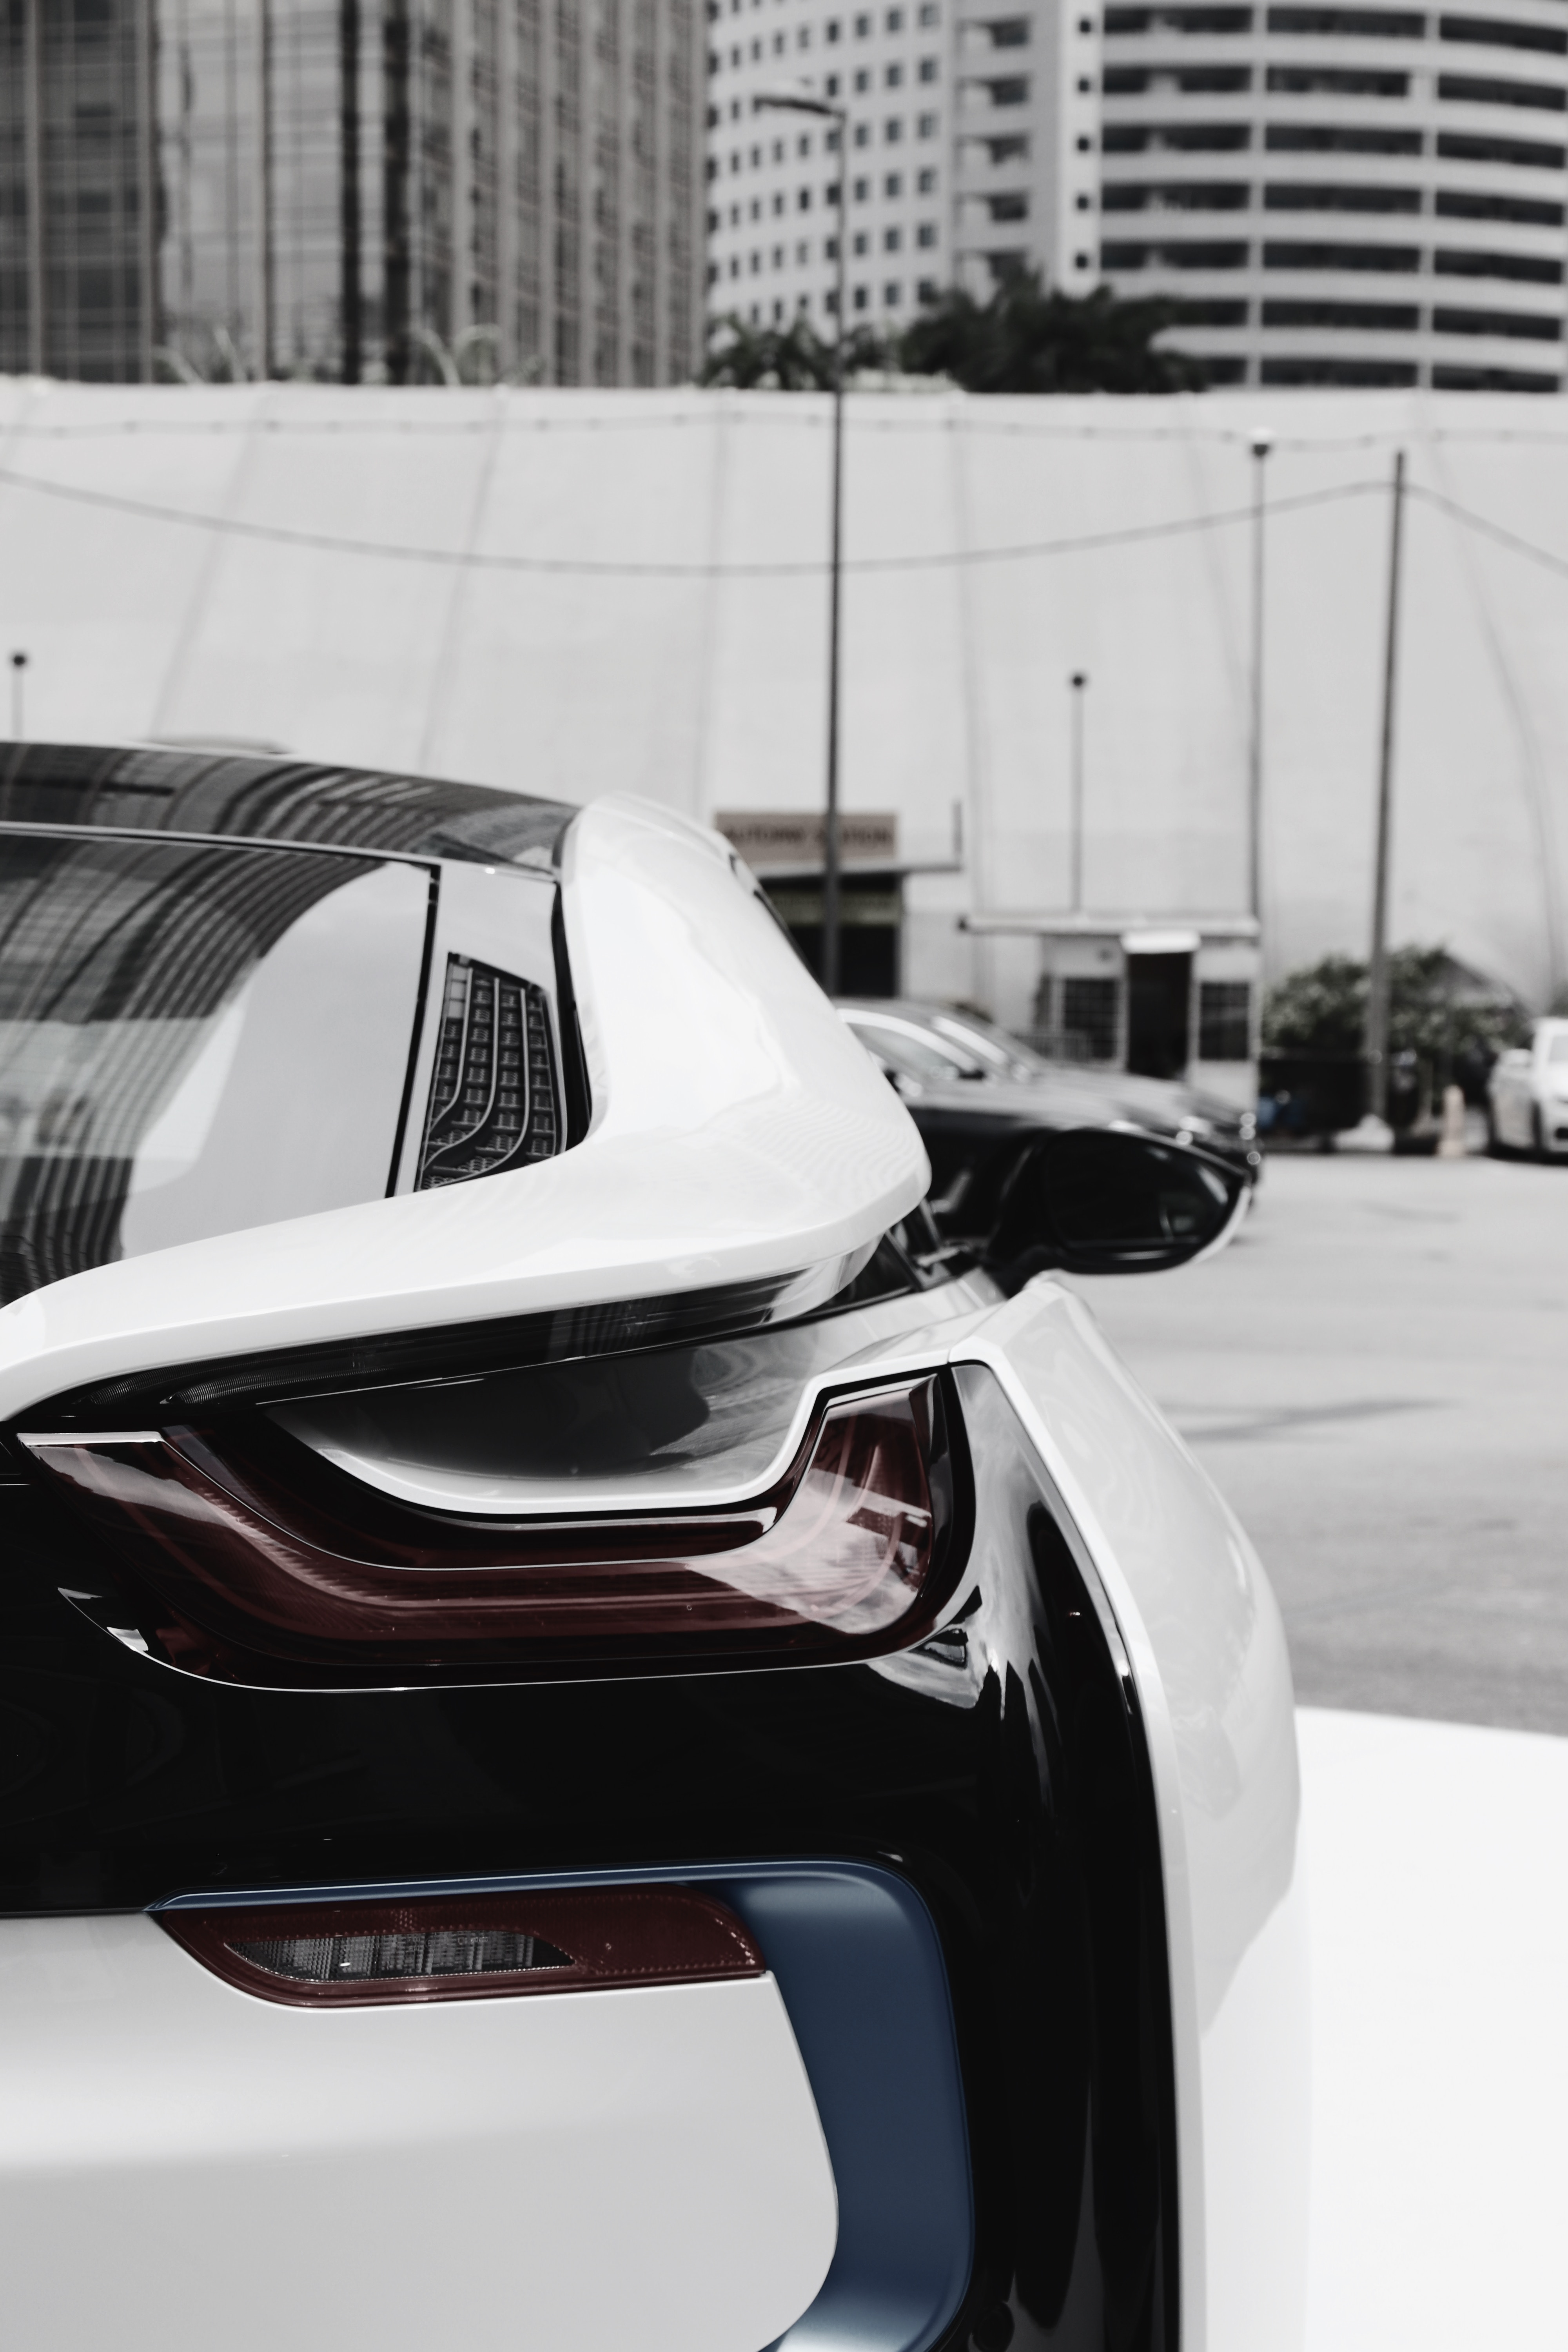 62724 download wallpaper Bmw, Cars, Car, Back View, Rear View, Headlight, Bmw I8 screensavers and pictures for free